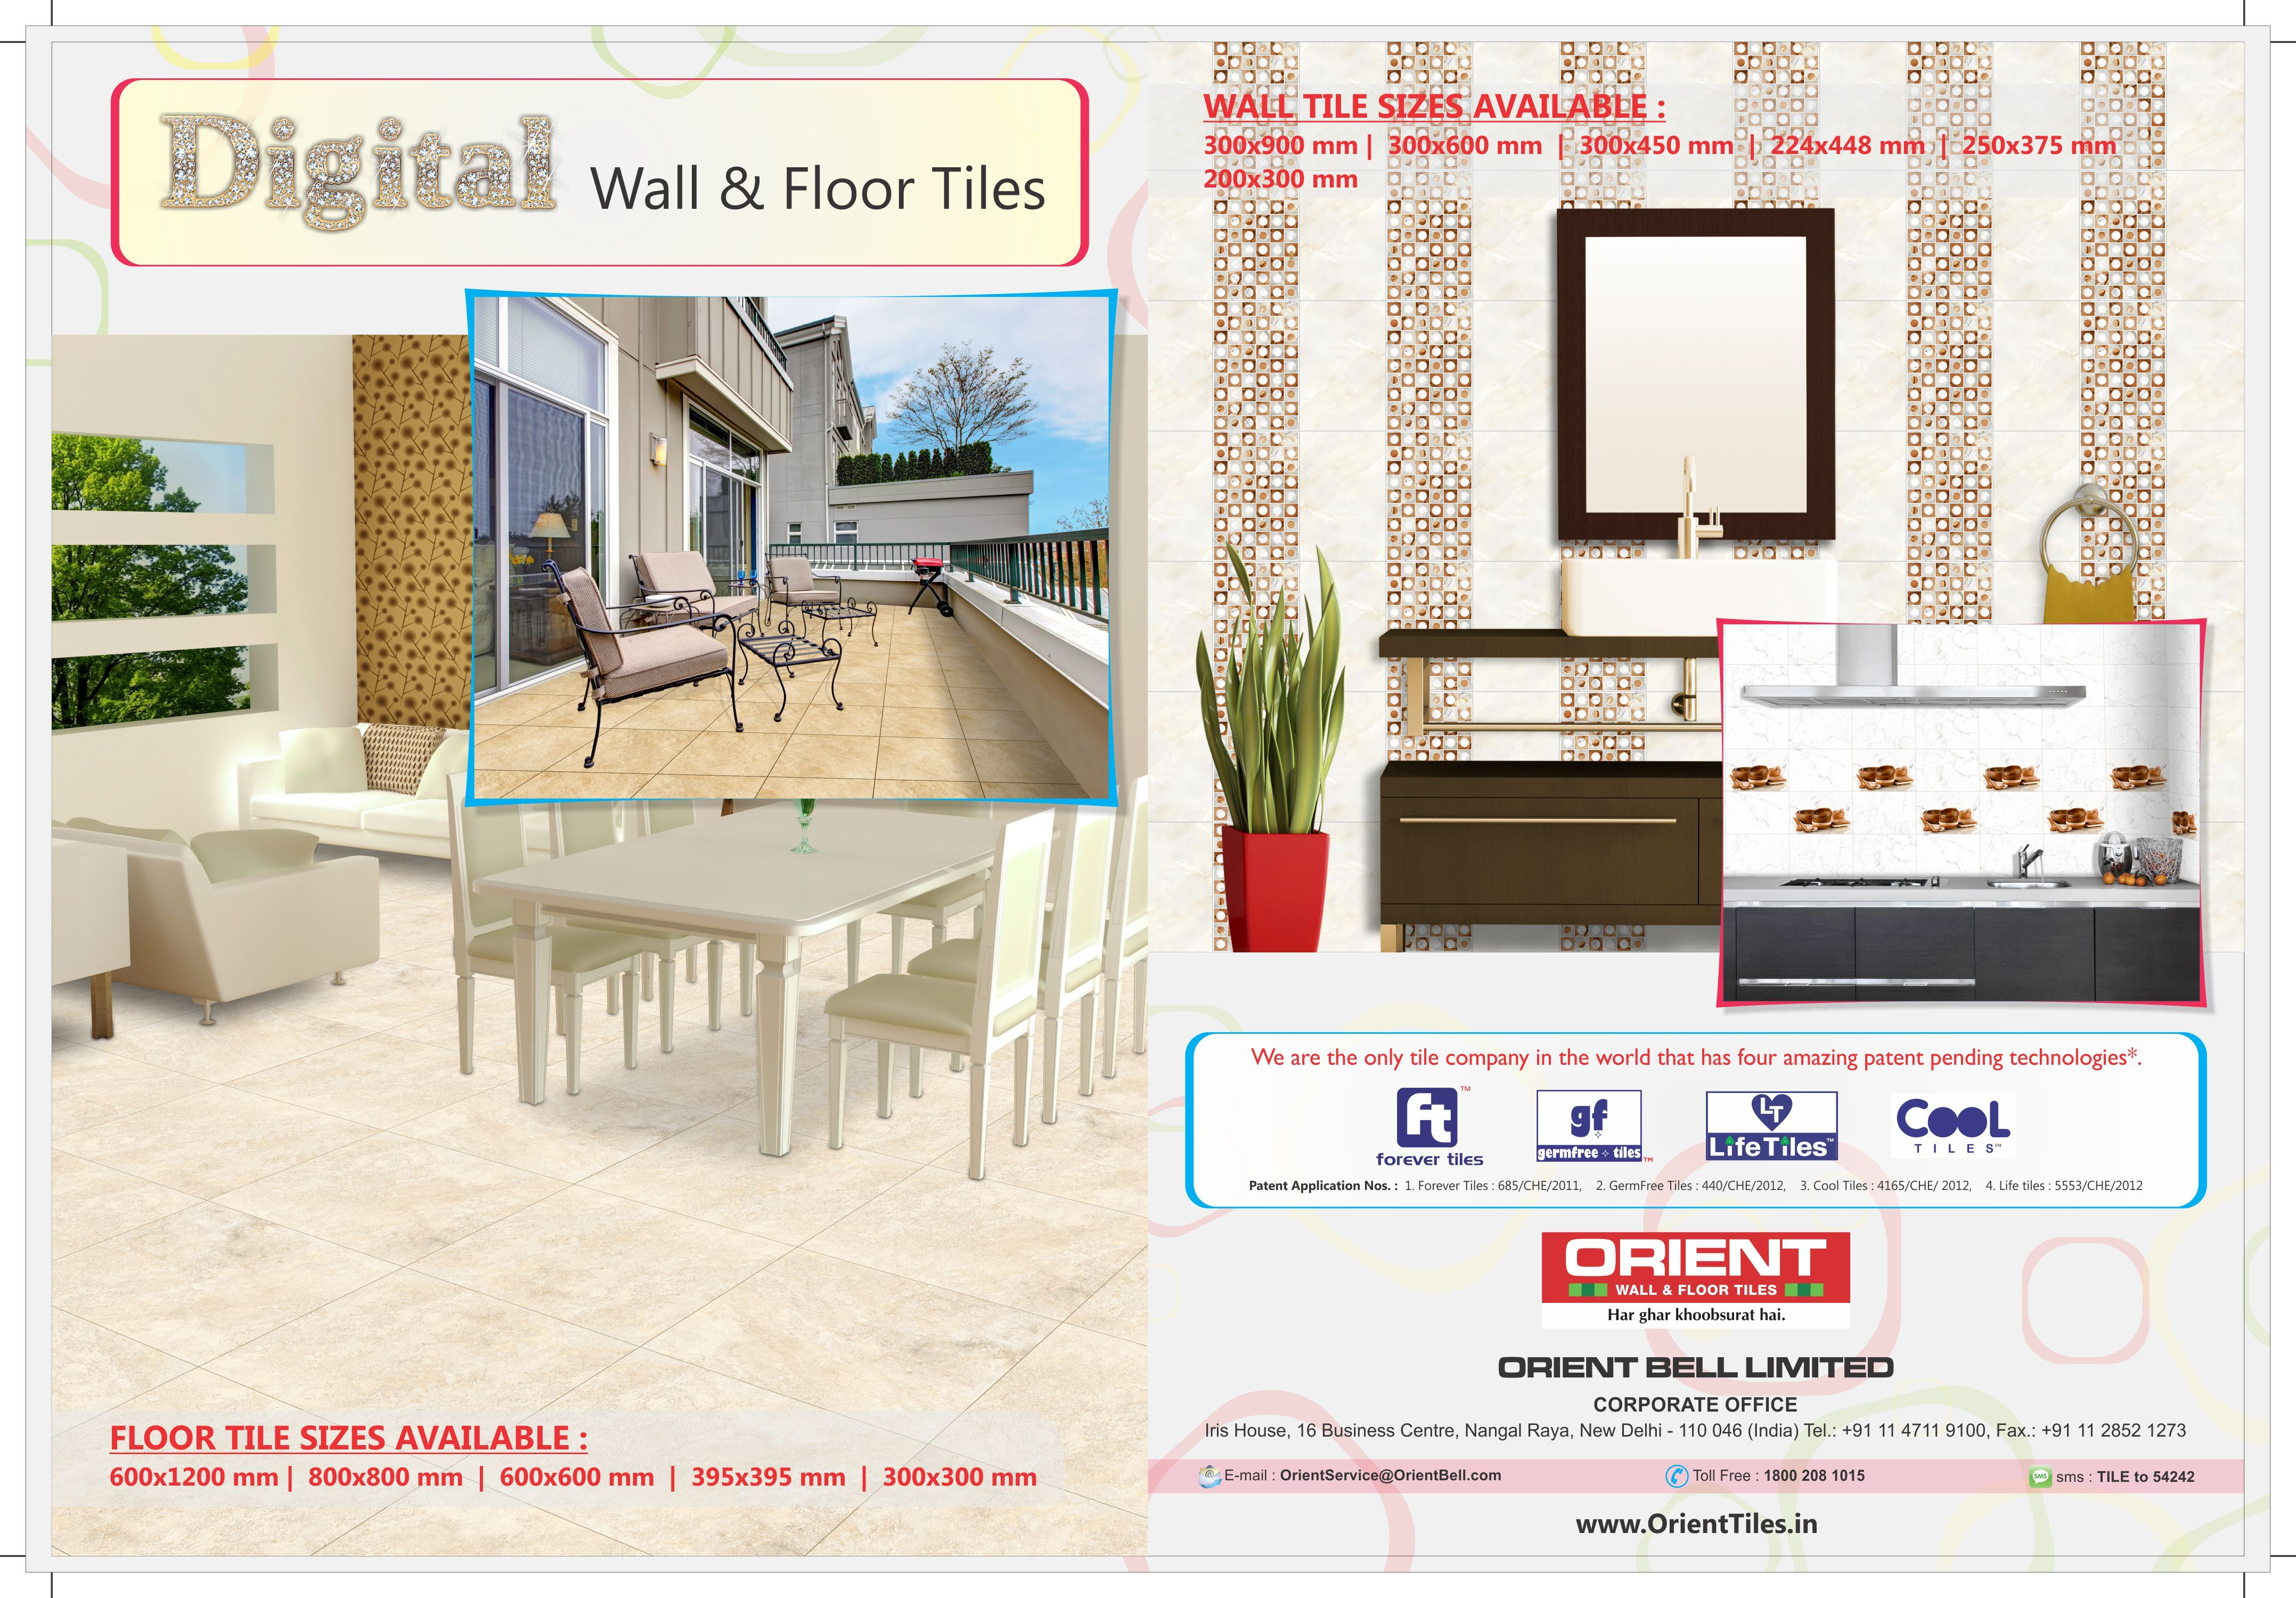 We Are The Only Tile Company In The World That Has Four Amazing Patend Pending Technologies For More Info Floor Tile Design Wall And Floor Tiles Tile Design